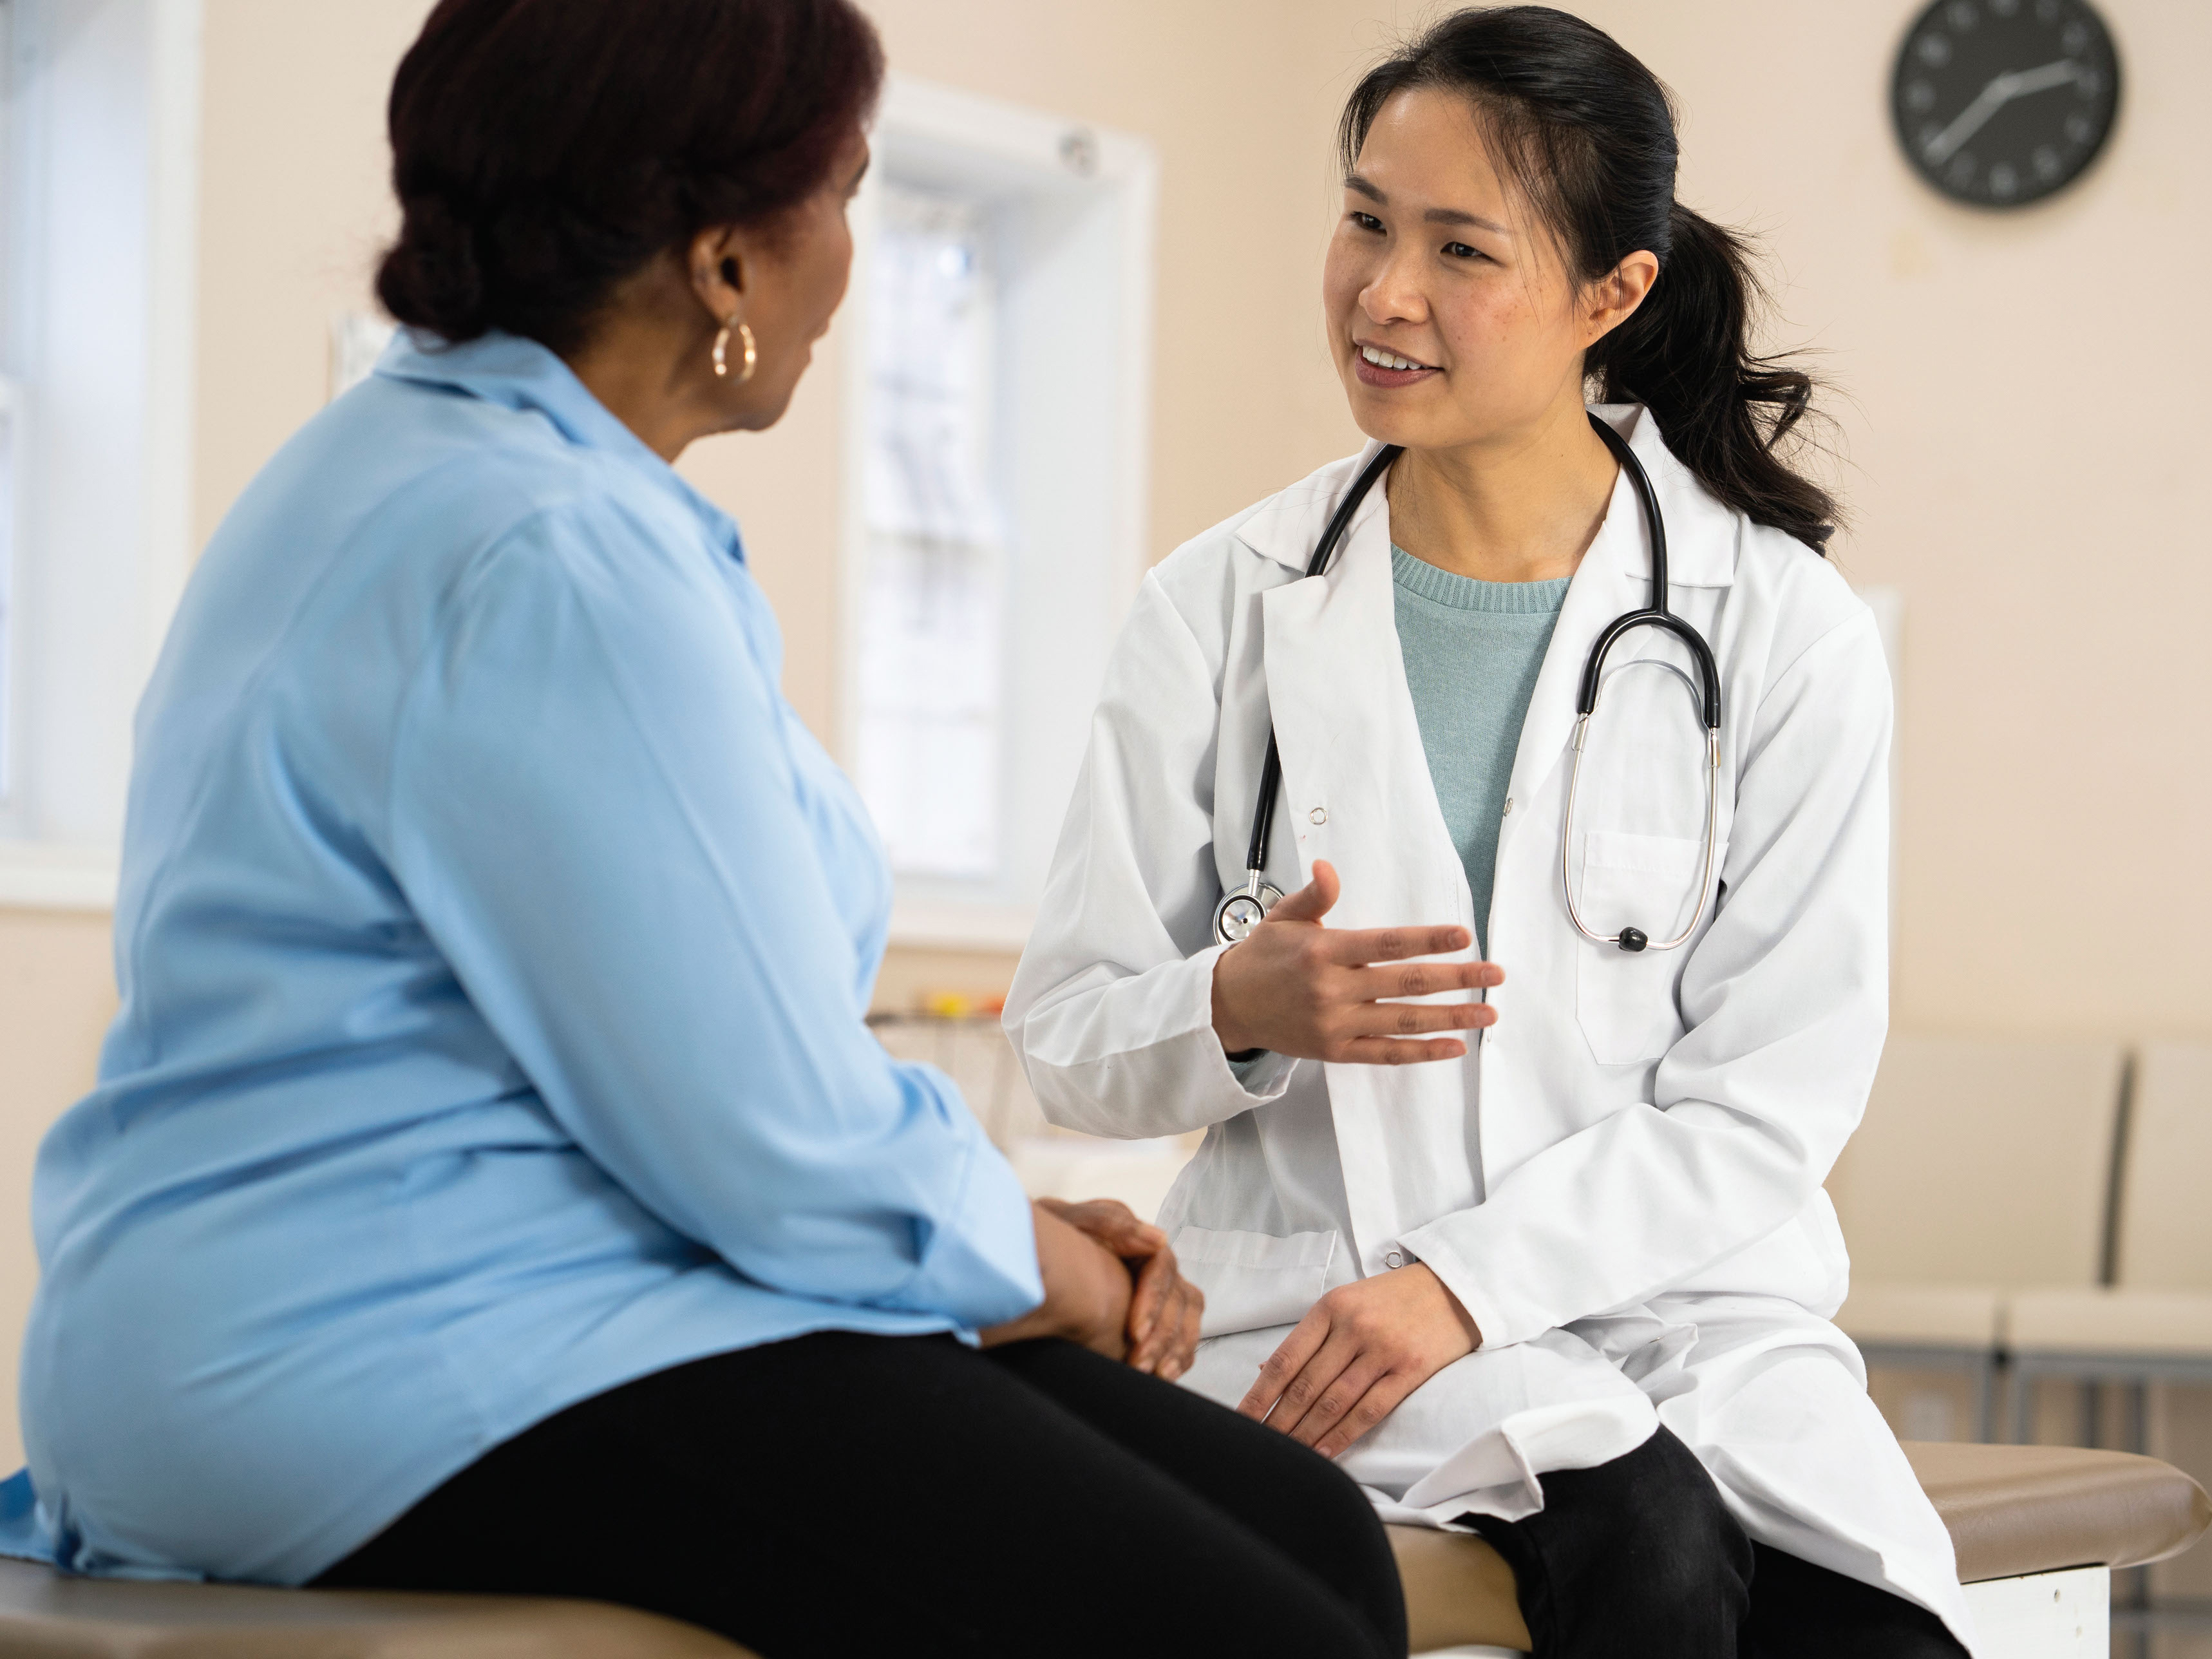 ACS Cervical Cancer Screening Guidelines Prefer HPV Over Pap Tests